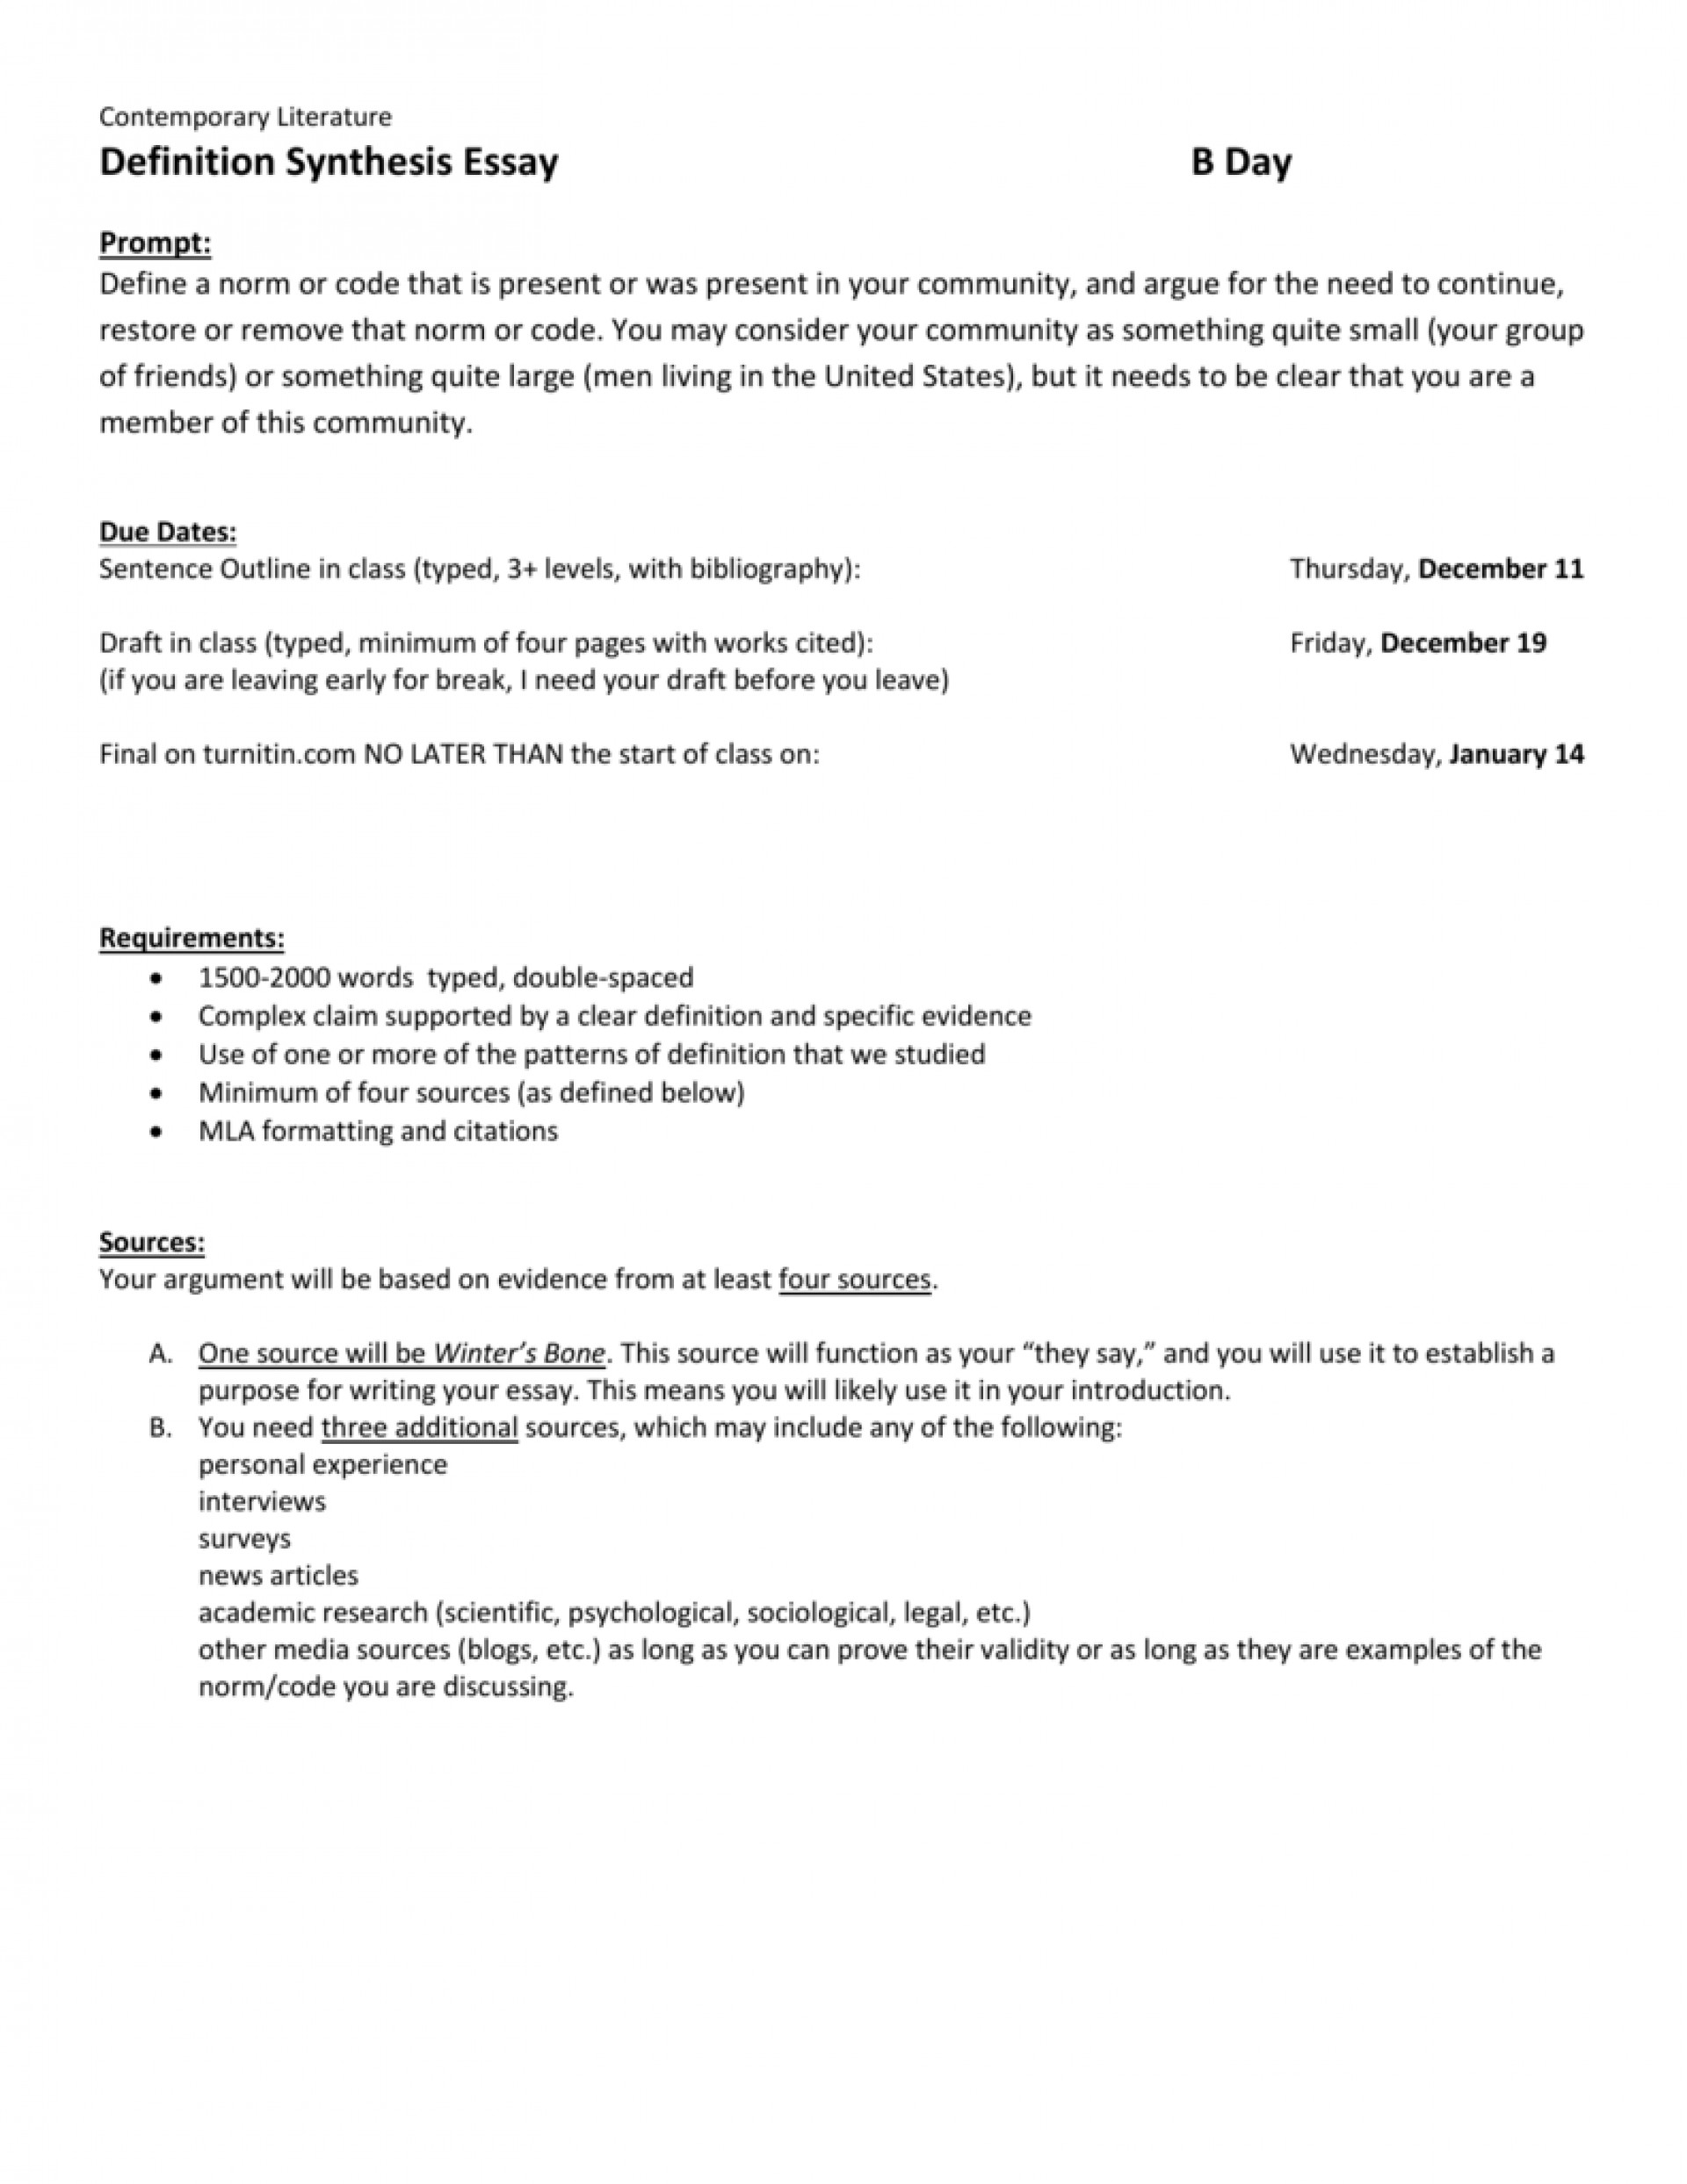 018 008124568 1 Prompt Definition Essay Fascinating 1920